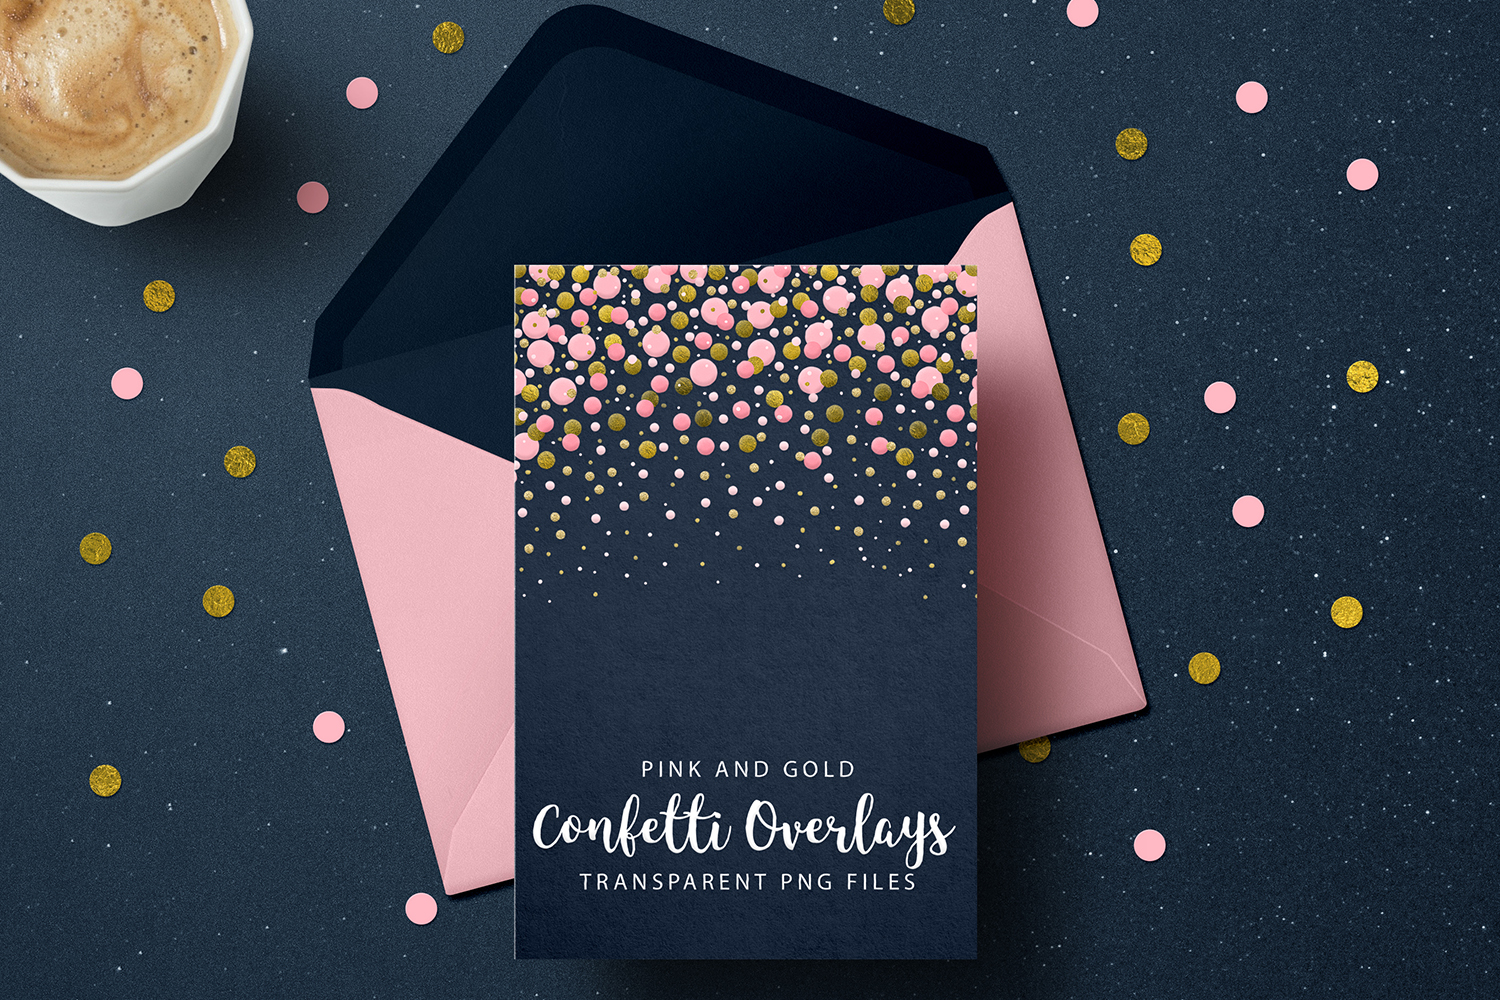 Pink and Gold Confetti Overlays, Transparent PNGs example image 7